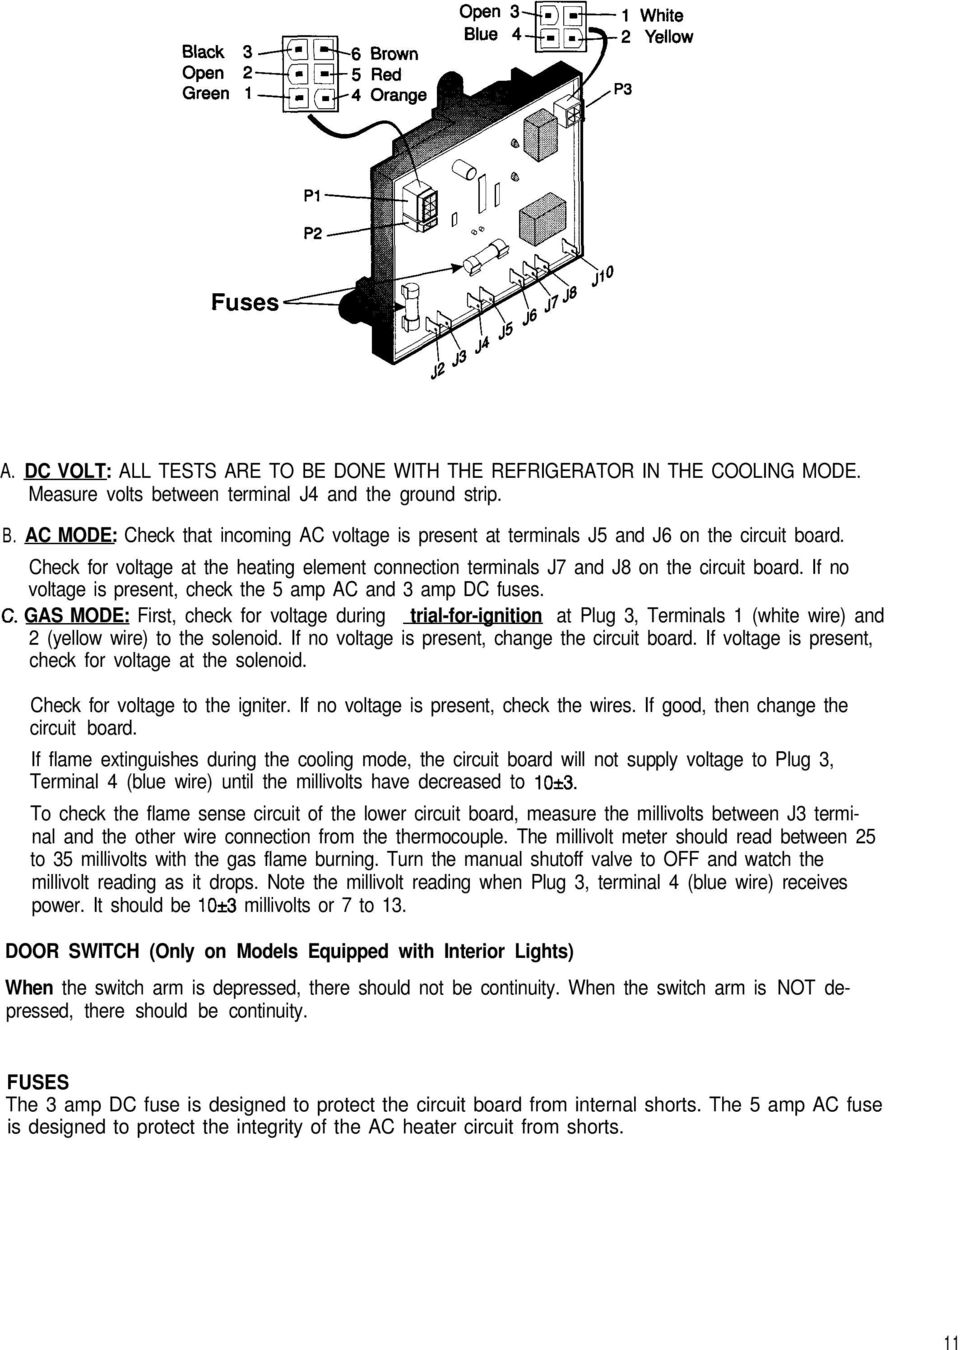 Service Tips Dometic Refrigerators Models Os1927 4 96 Copyright Rm2652 Wiring Schematic Gas Mode First Check For Voltage During Trial Ignition At Plug